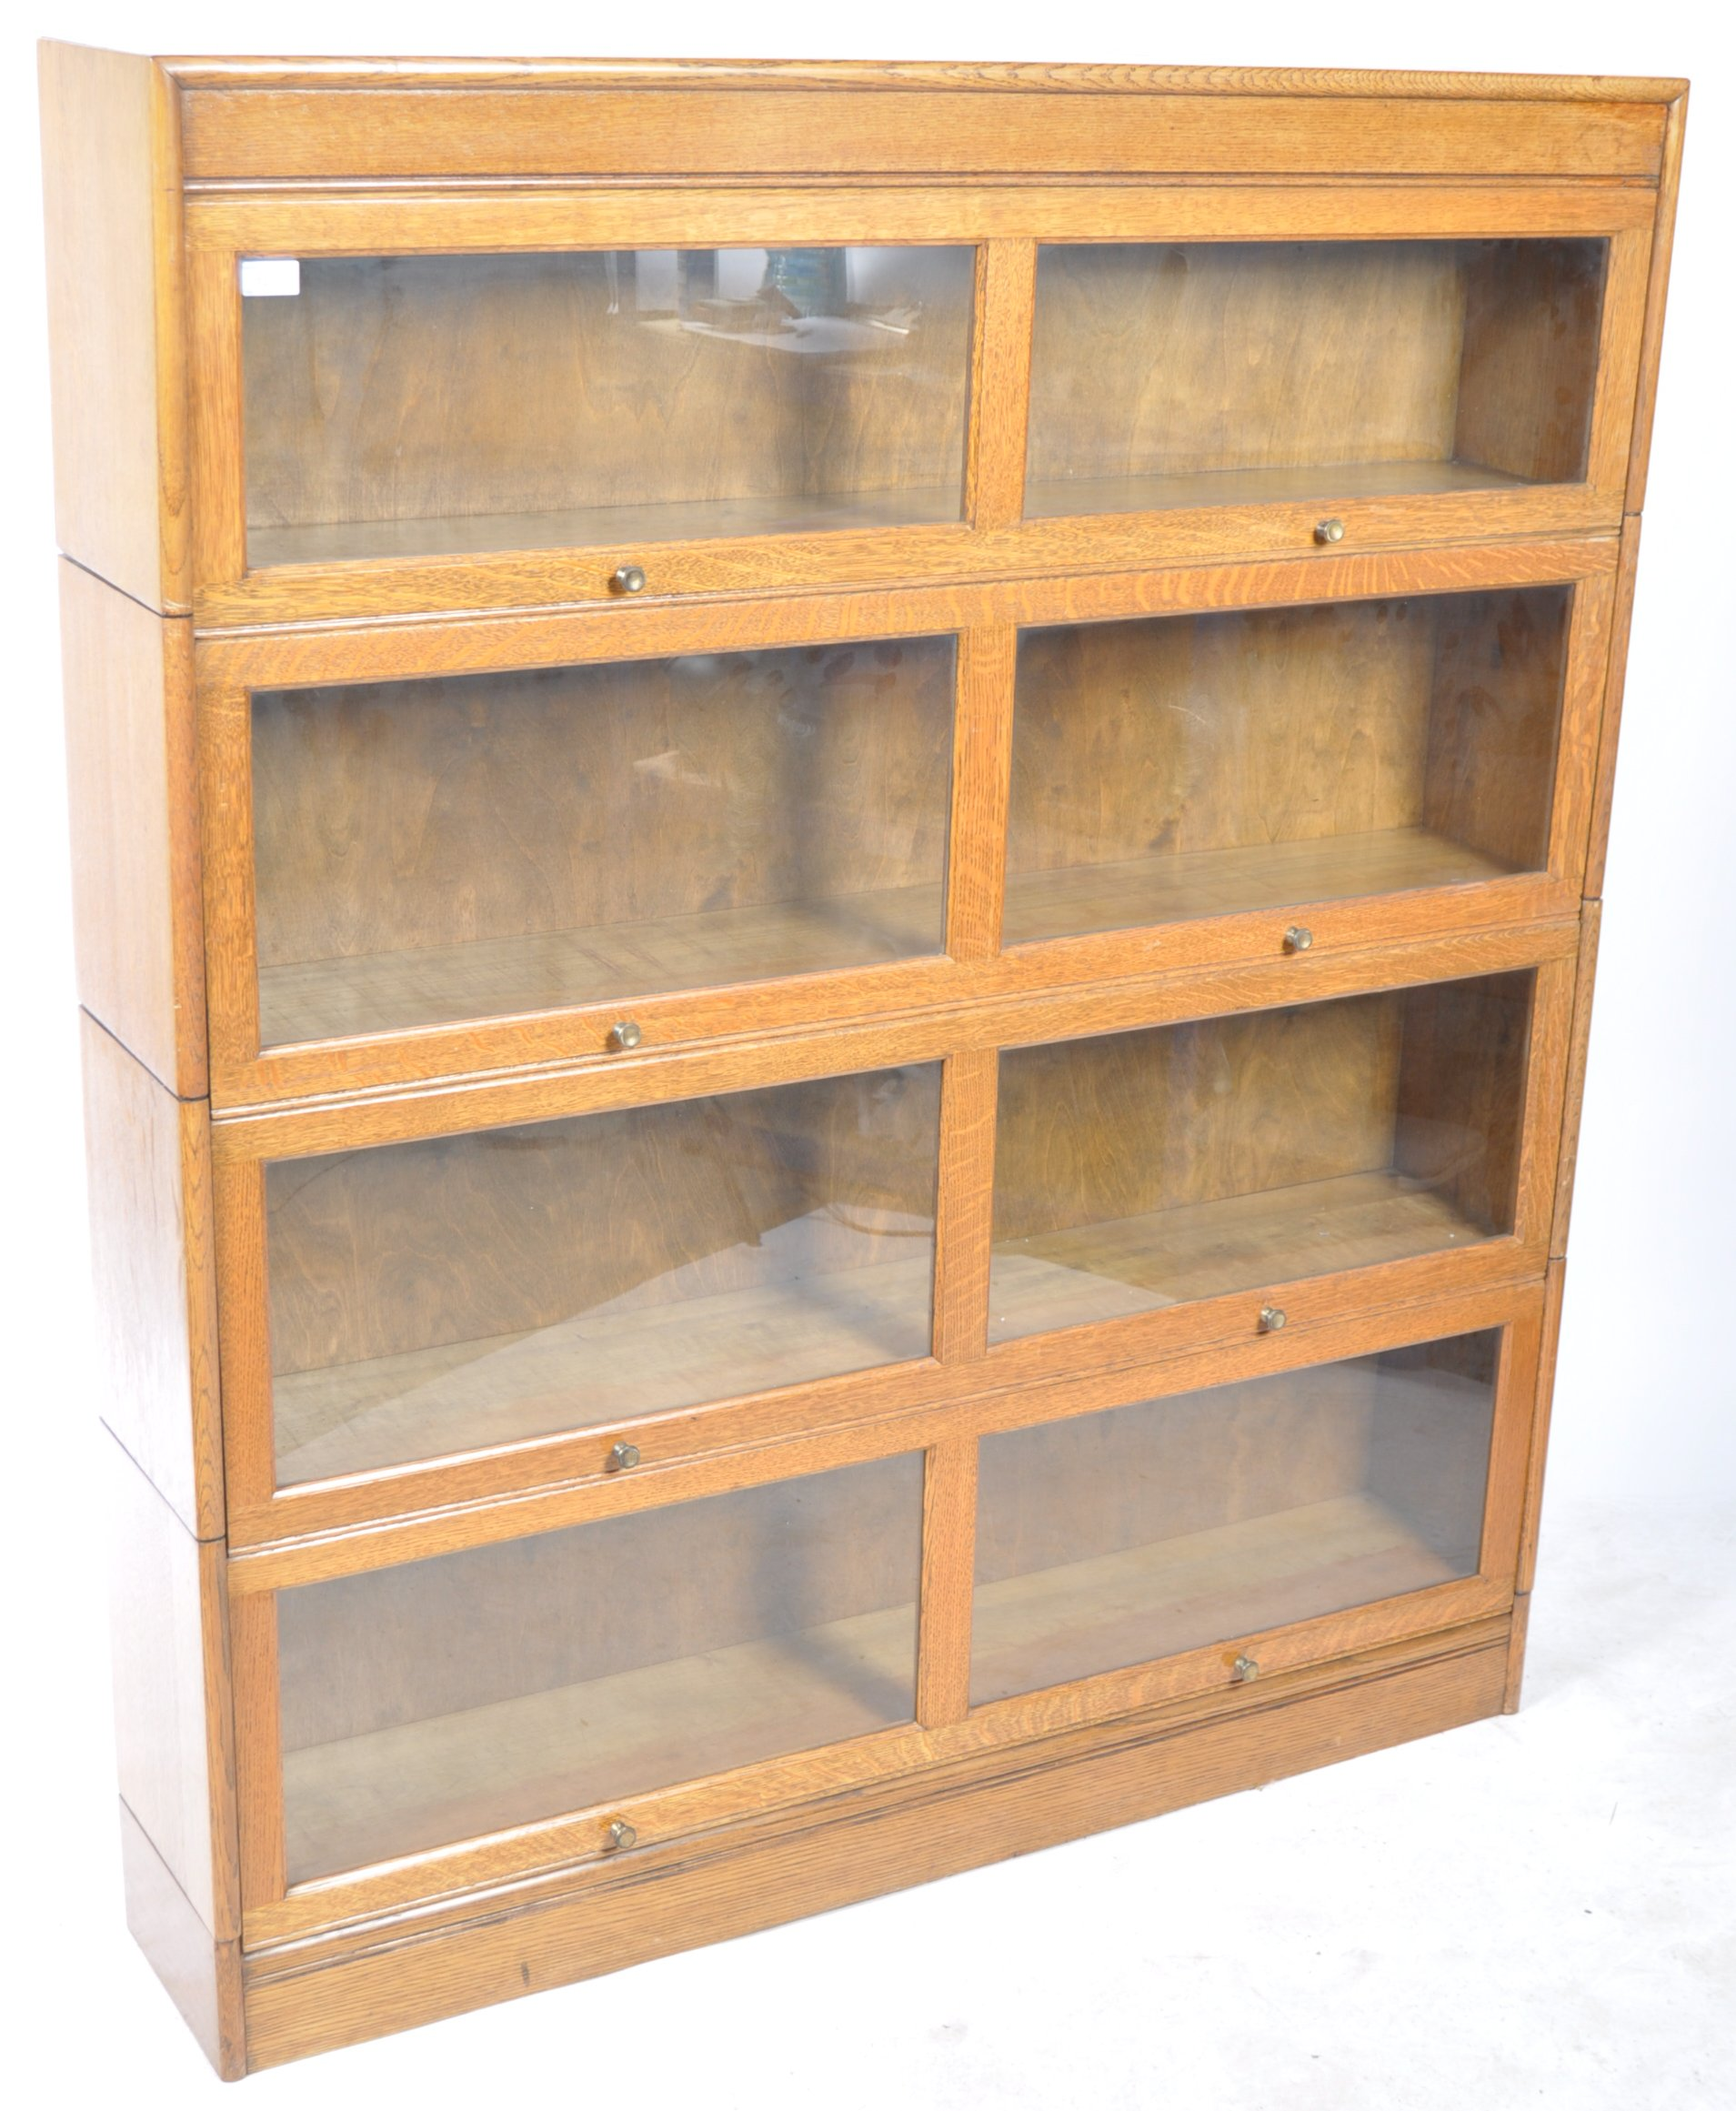 EARLY 20TH CENTURY FOUR SECTION LAWYERS STACKING BOOKCASE - Image 2 of 6